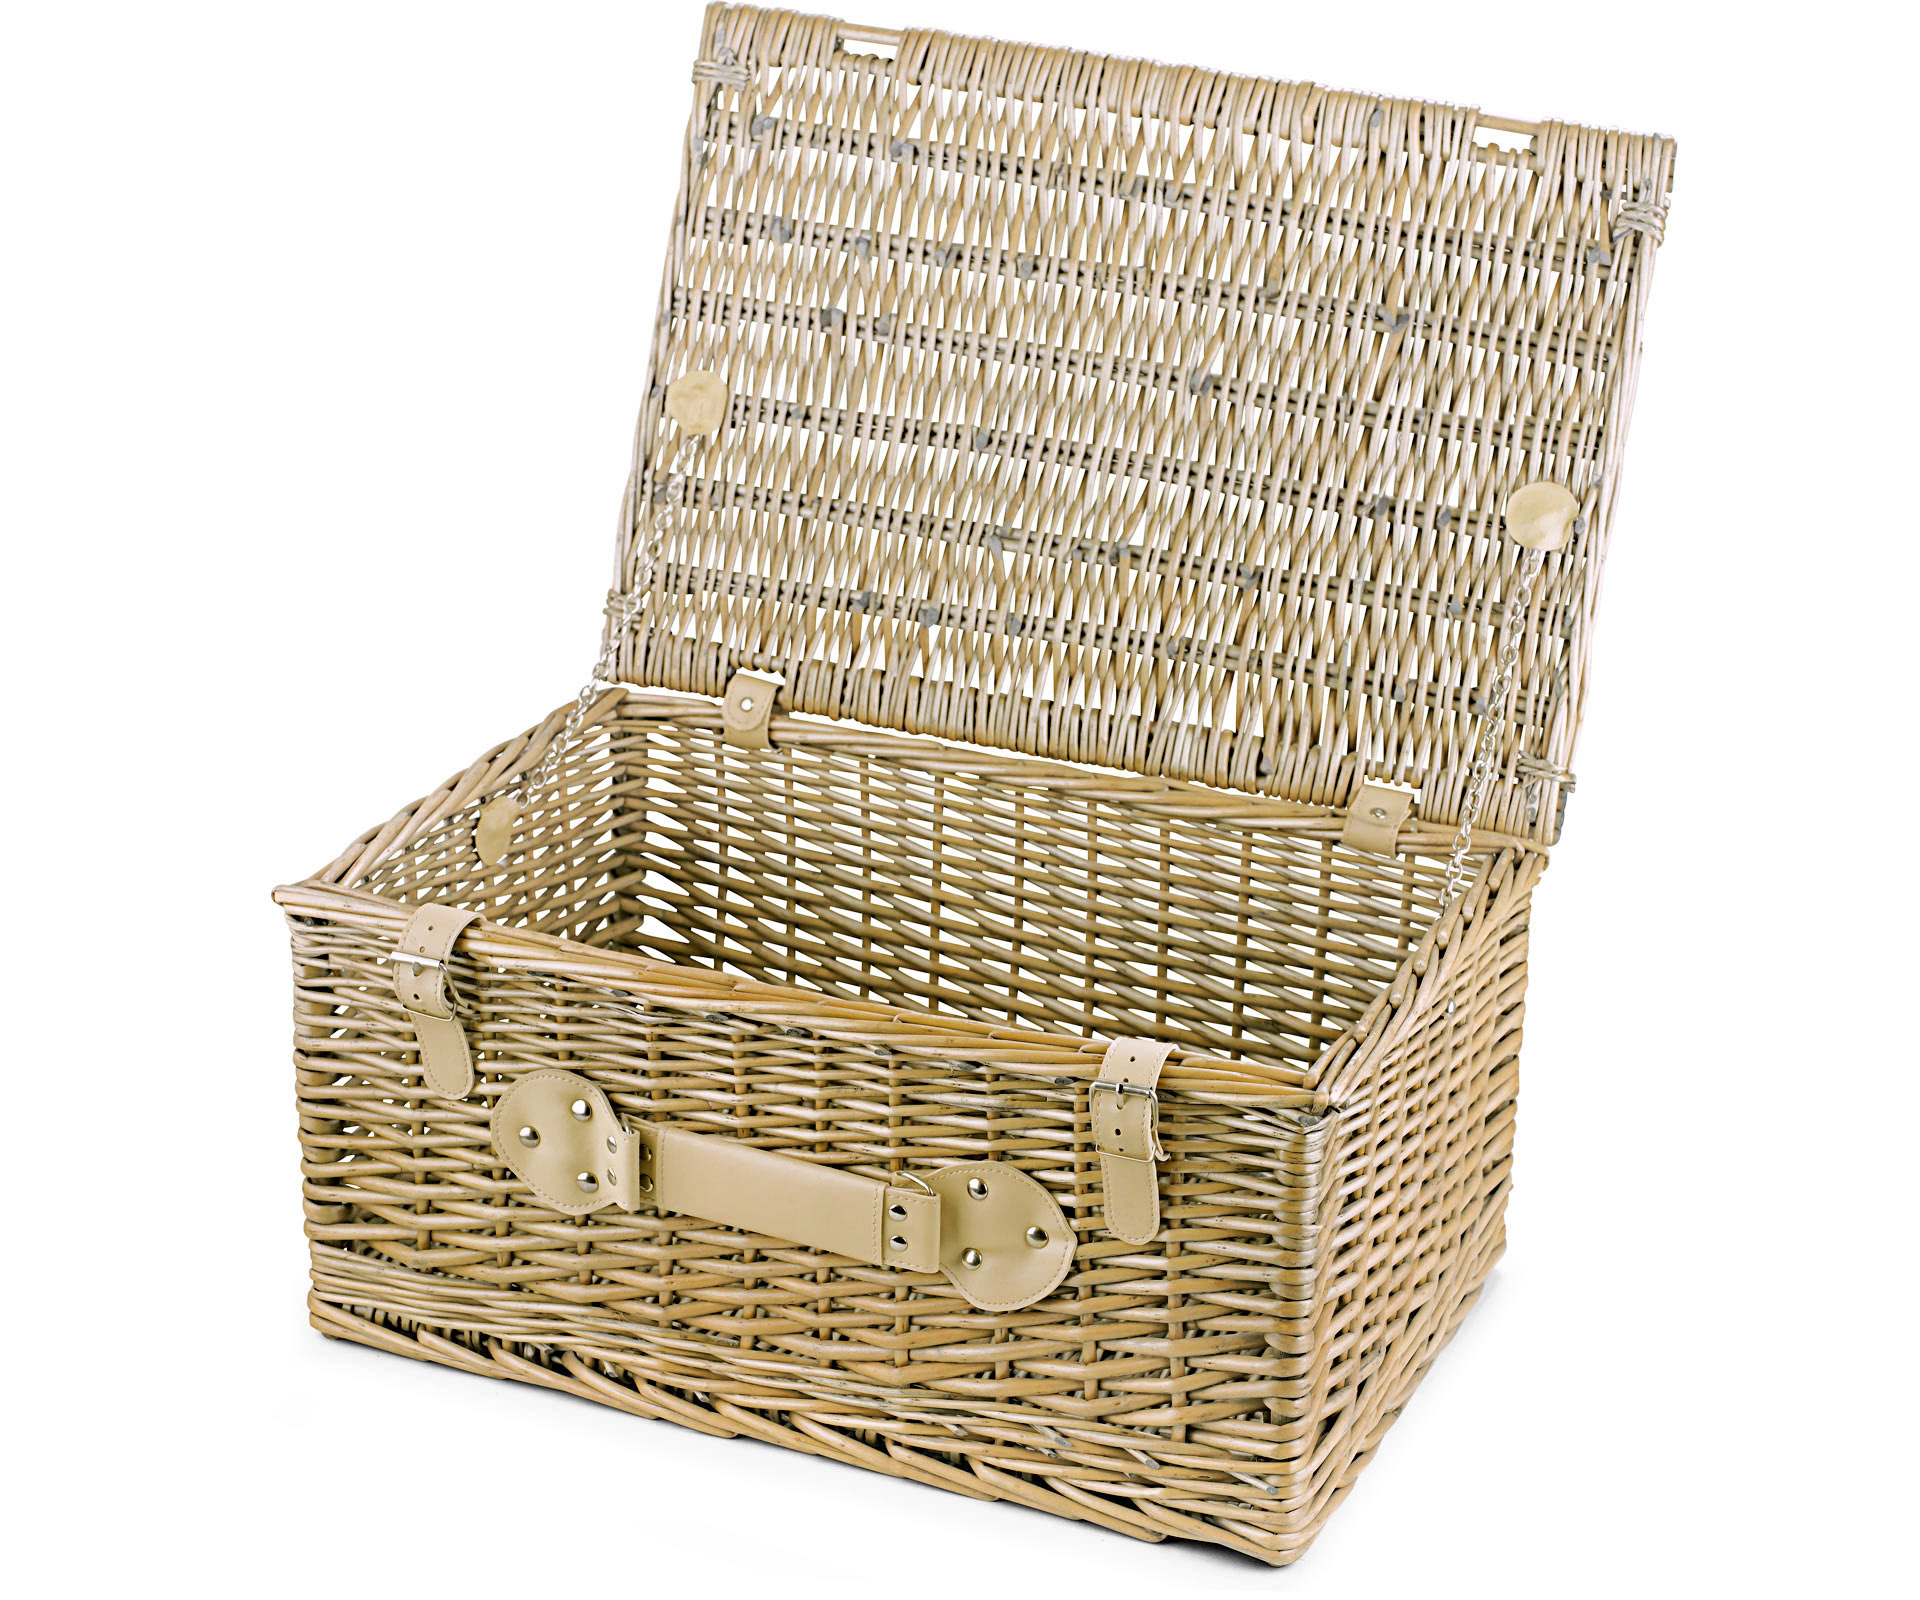 Empty Wicker Gift Baskets : Empty wicker hamper basket lidded xx large